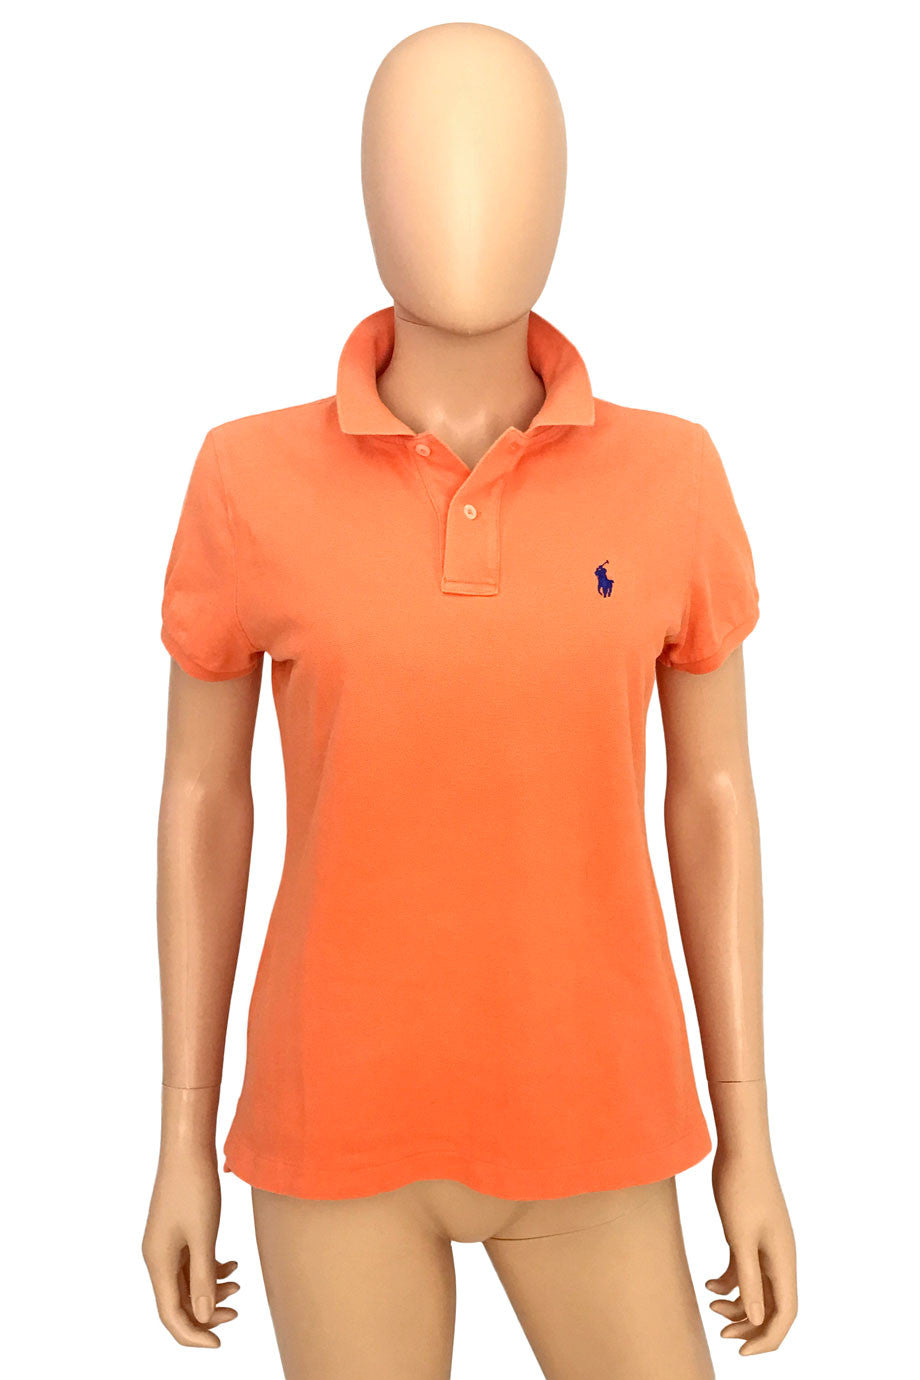 Ralph Lauren Skinny Fit Orange Mesh Knit Polo Shirt / Sz L-Style Therapy